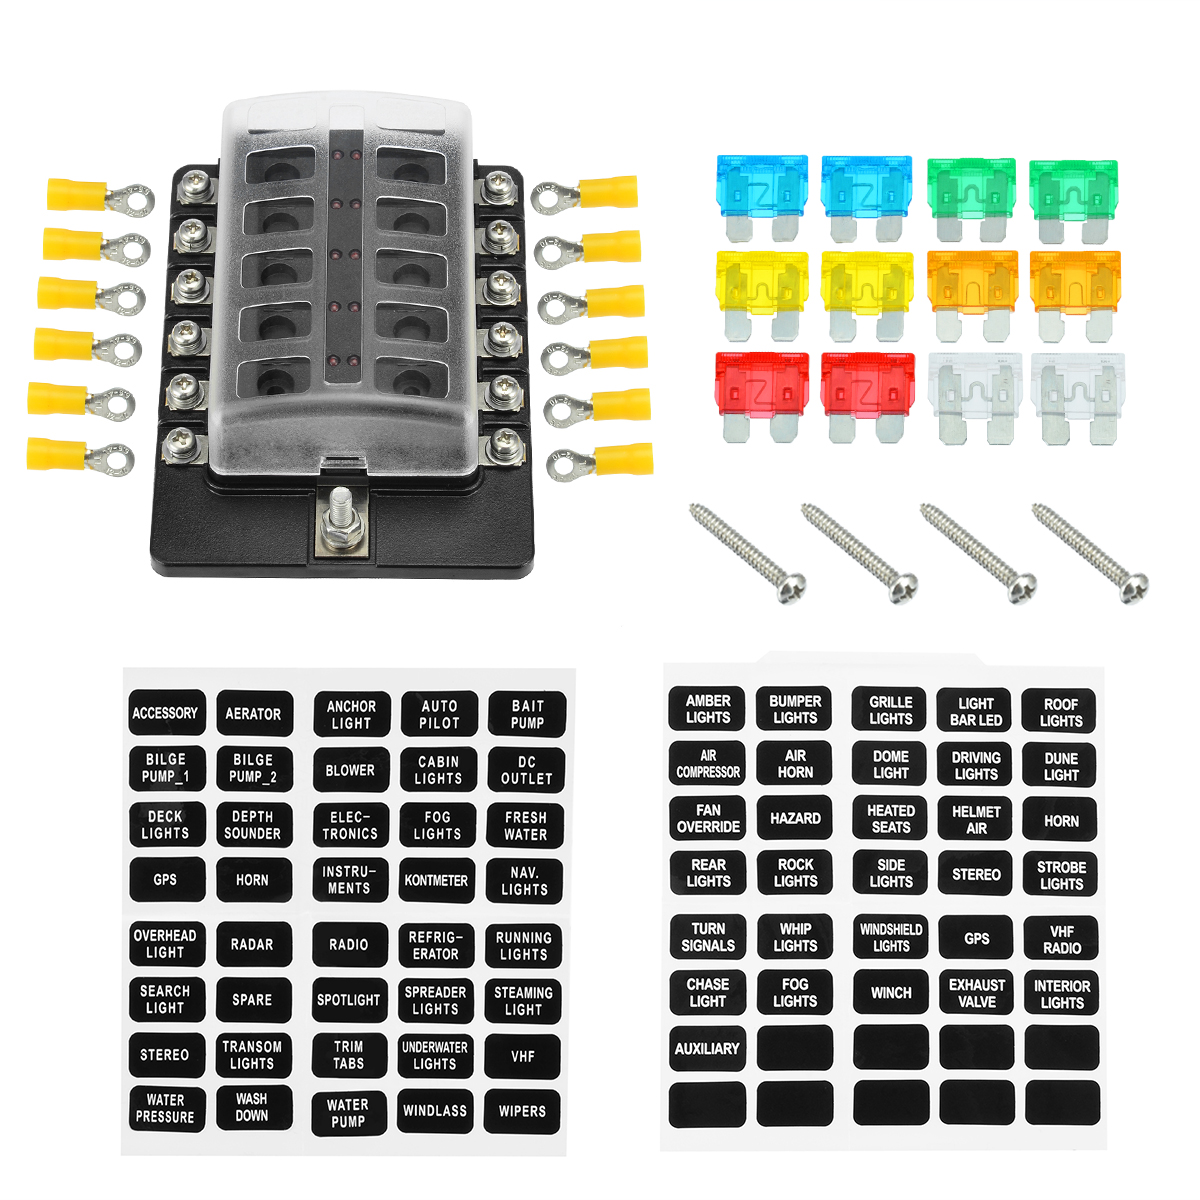 new 12 way car boat bus utv blade fuse box ato atc block holder cover 12v with red led indicator yellow terminals screws aliexpress com imall com [ 1200 x 1200 Pixel ]